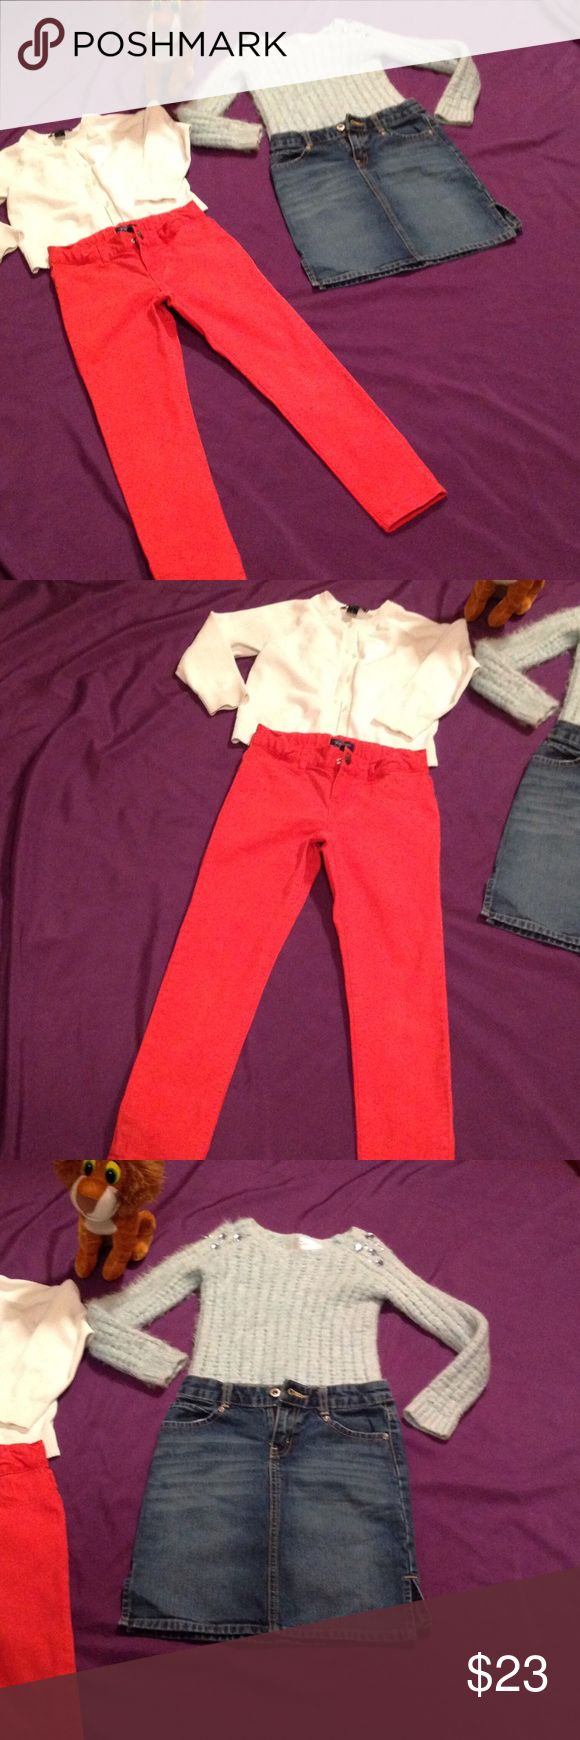 Lot of girls tops & bottoms in sizes 6 to 7 Cute lot of 4 pieces for your princess. The jeggings are from Place in size 6x to7 in reddish pink. The denim skirt is from Old Navy in size 7. Skirt has 2 front pockets & 2 back pockets with heart designs on them. The white sweater is from Lands End in size 6x. This sweater has a button down front. The second sweater is from Justice in size 6. It has jewels on the shoulders. All are in excellent preowned condition. Other